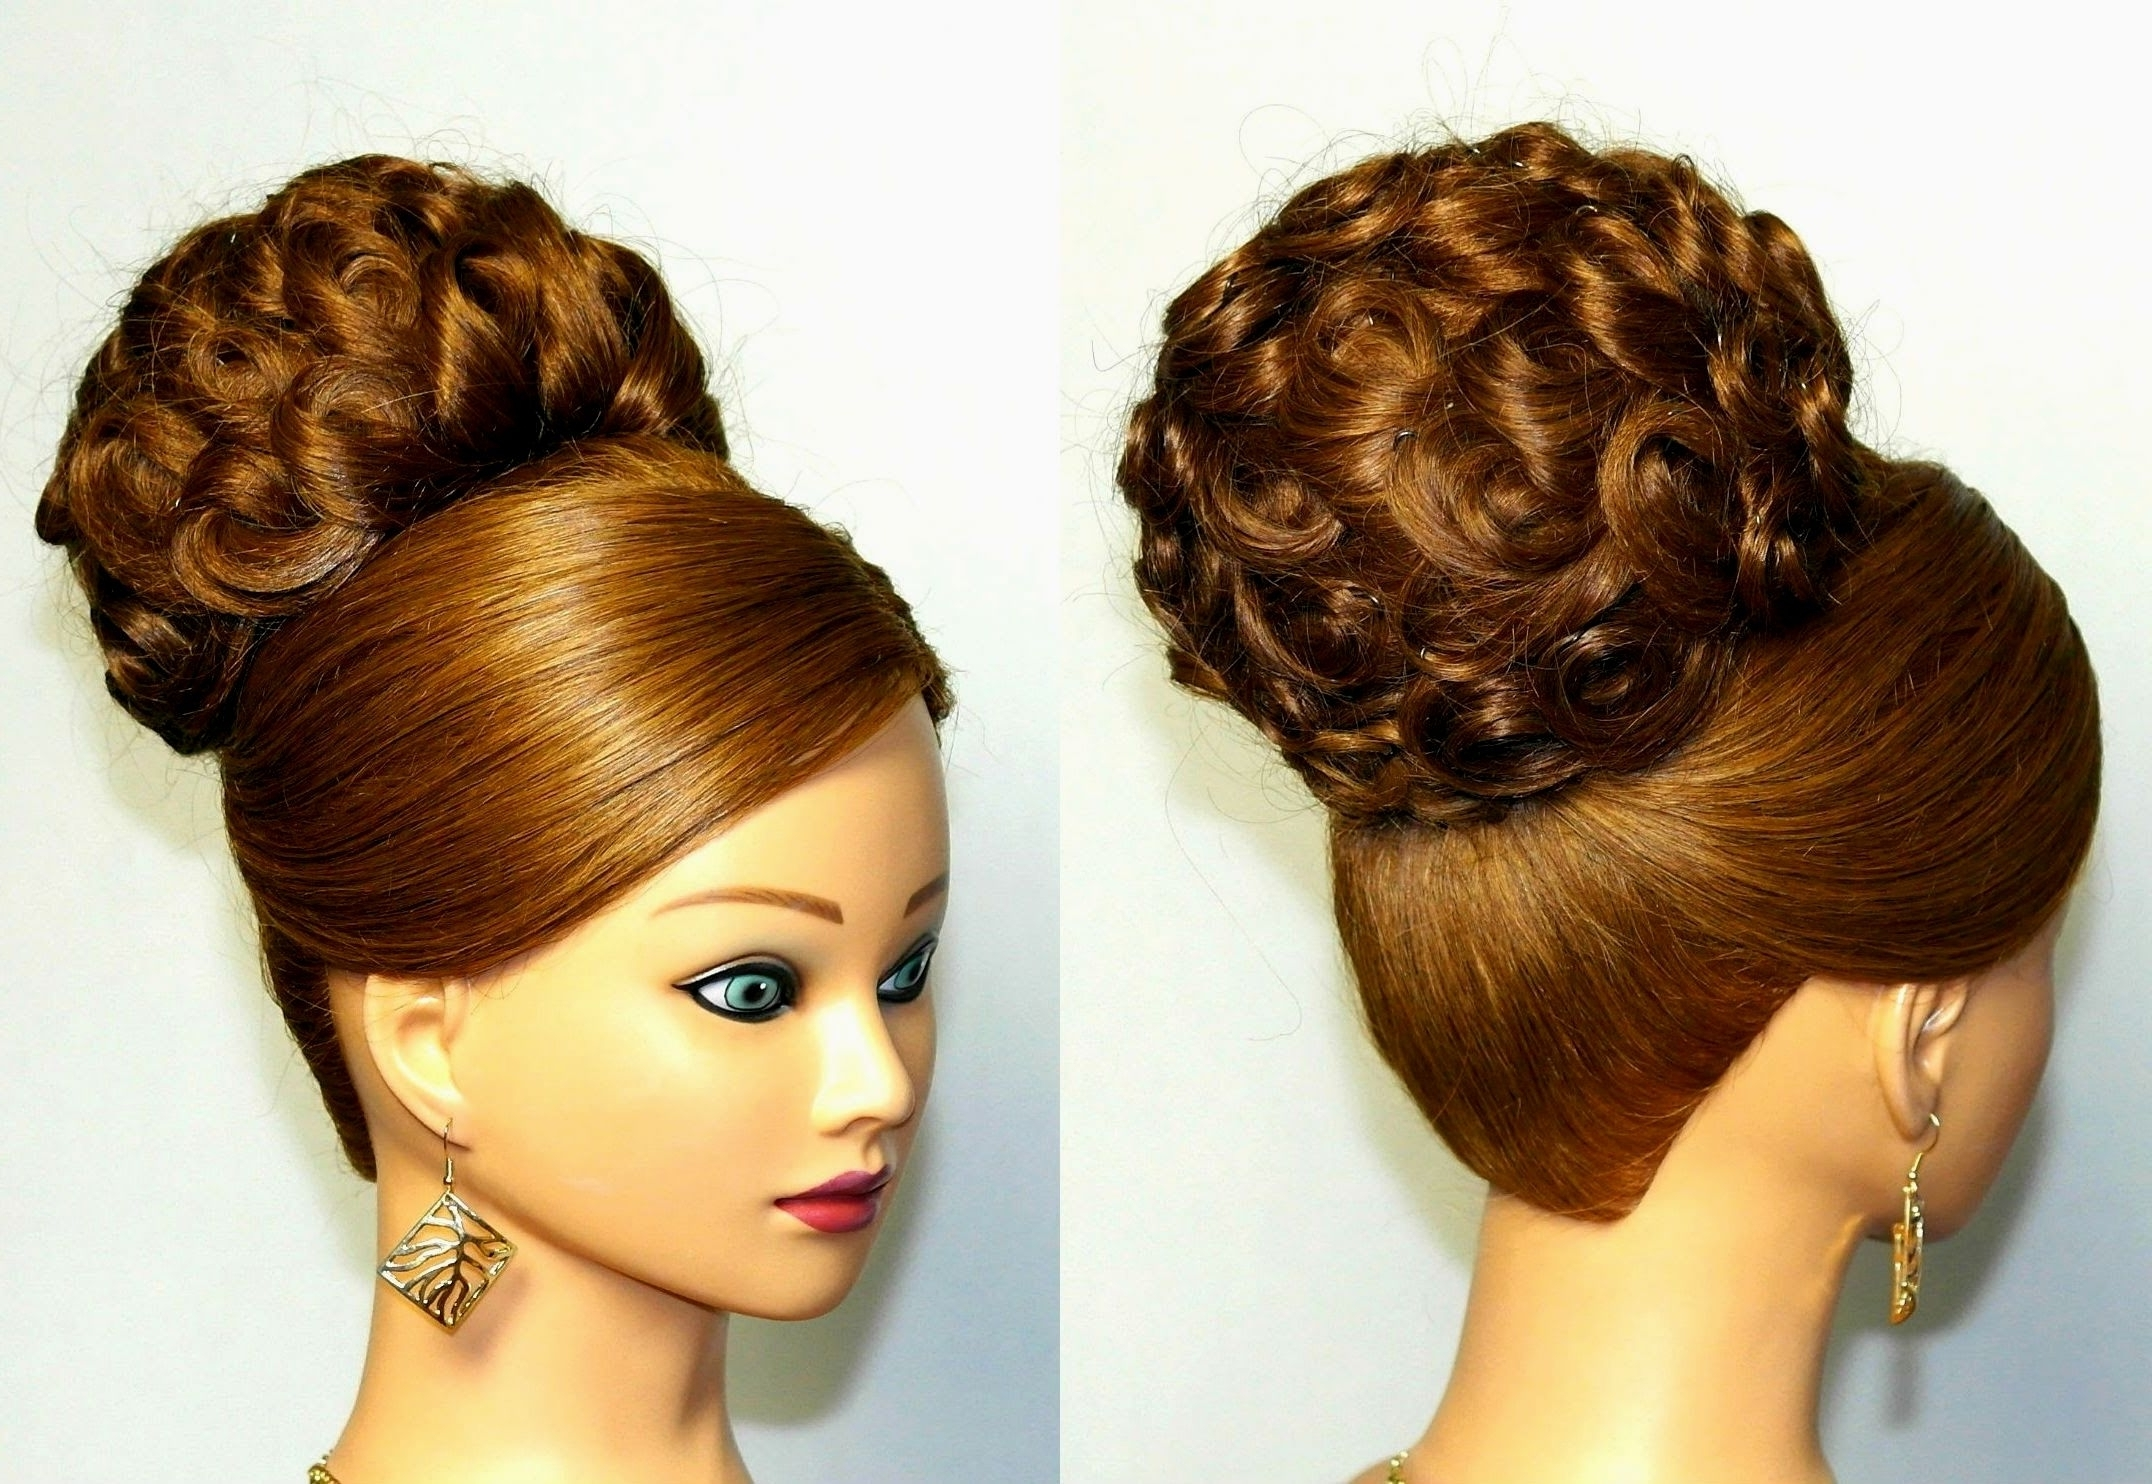 Fancy Updo Hairstyles For Long Hair Tag Fancy Updo Hairstyles For Regarding Fancy Updo Hairstyles For Long Hair (View 7 of 15)